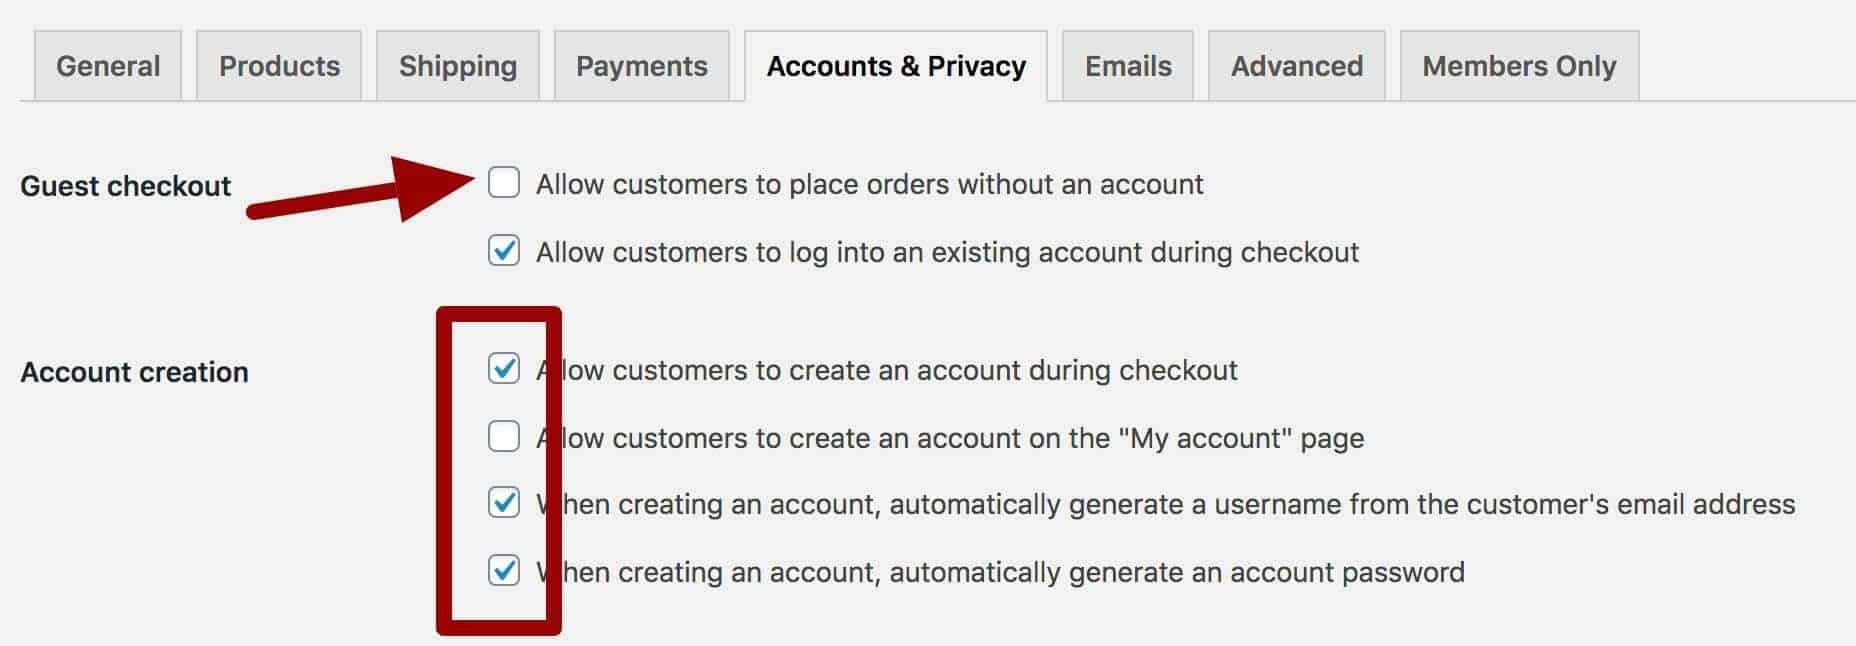 WooCommerce memberships - account creation